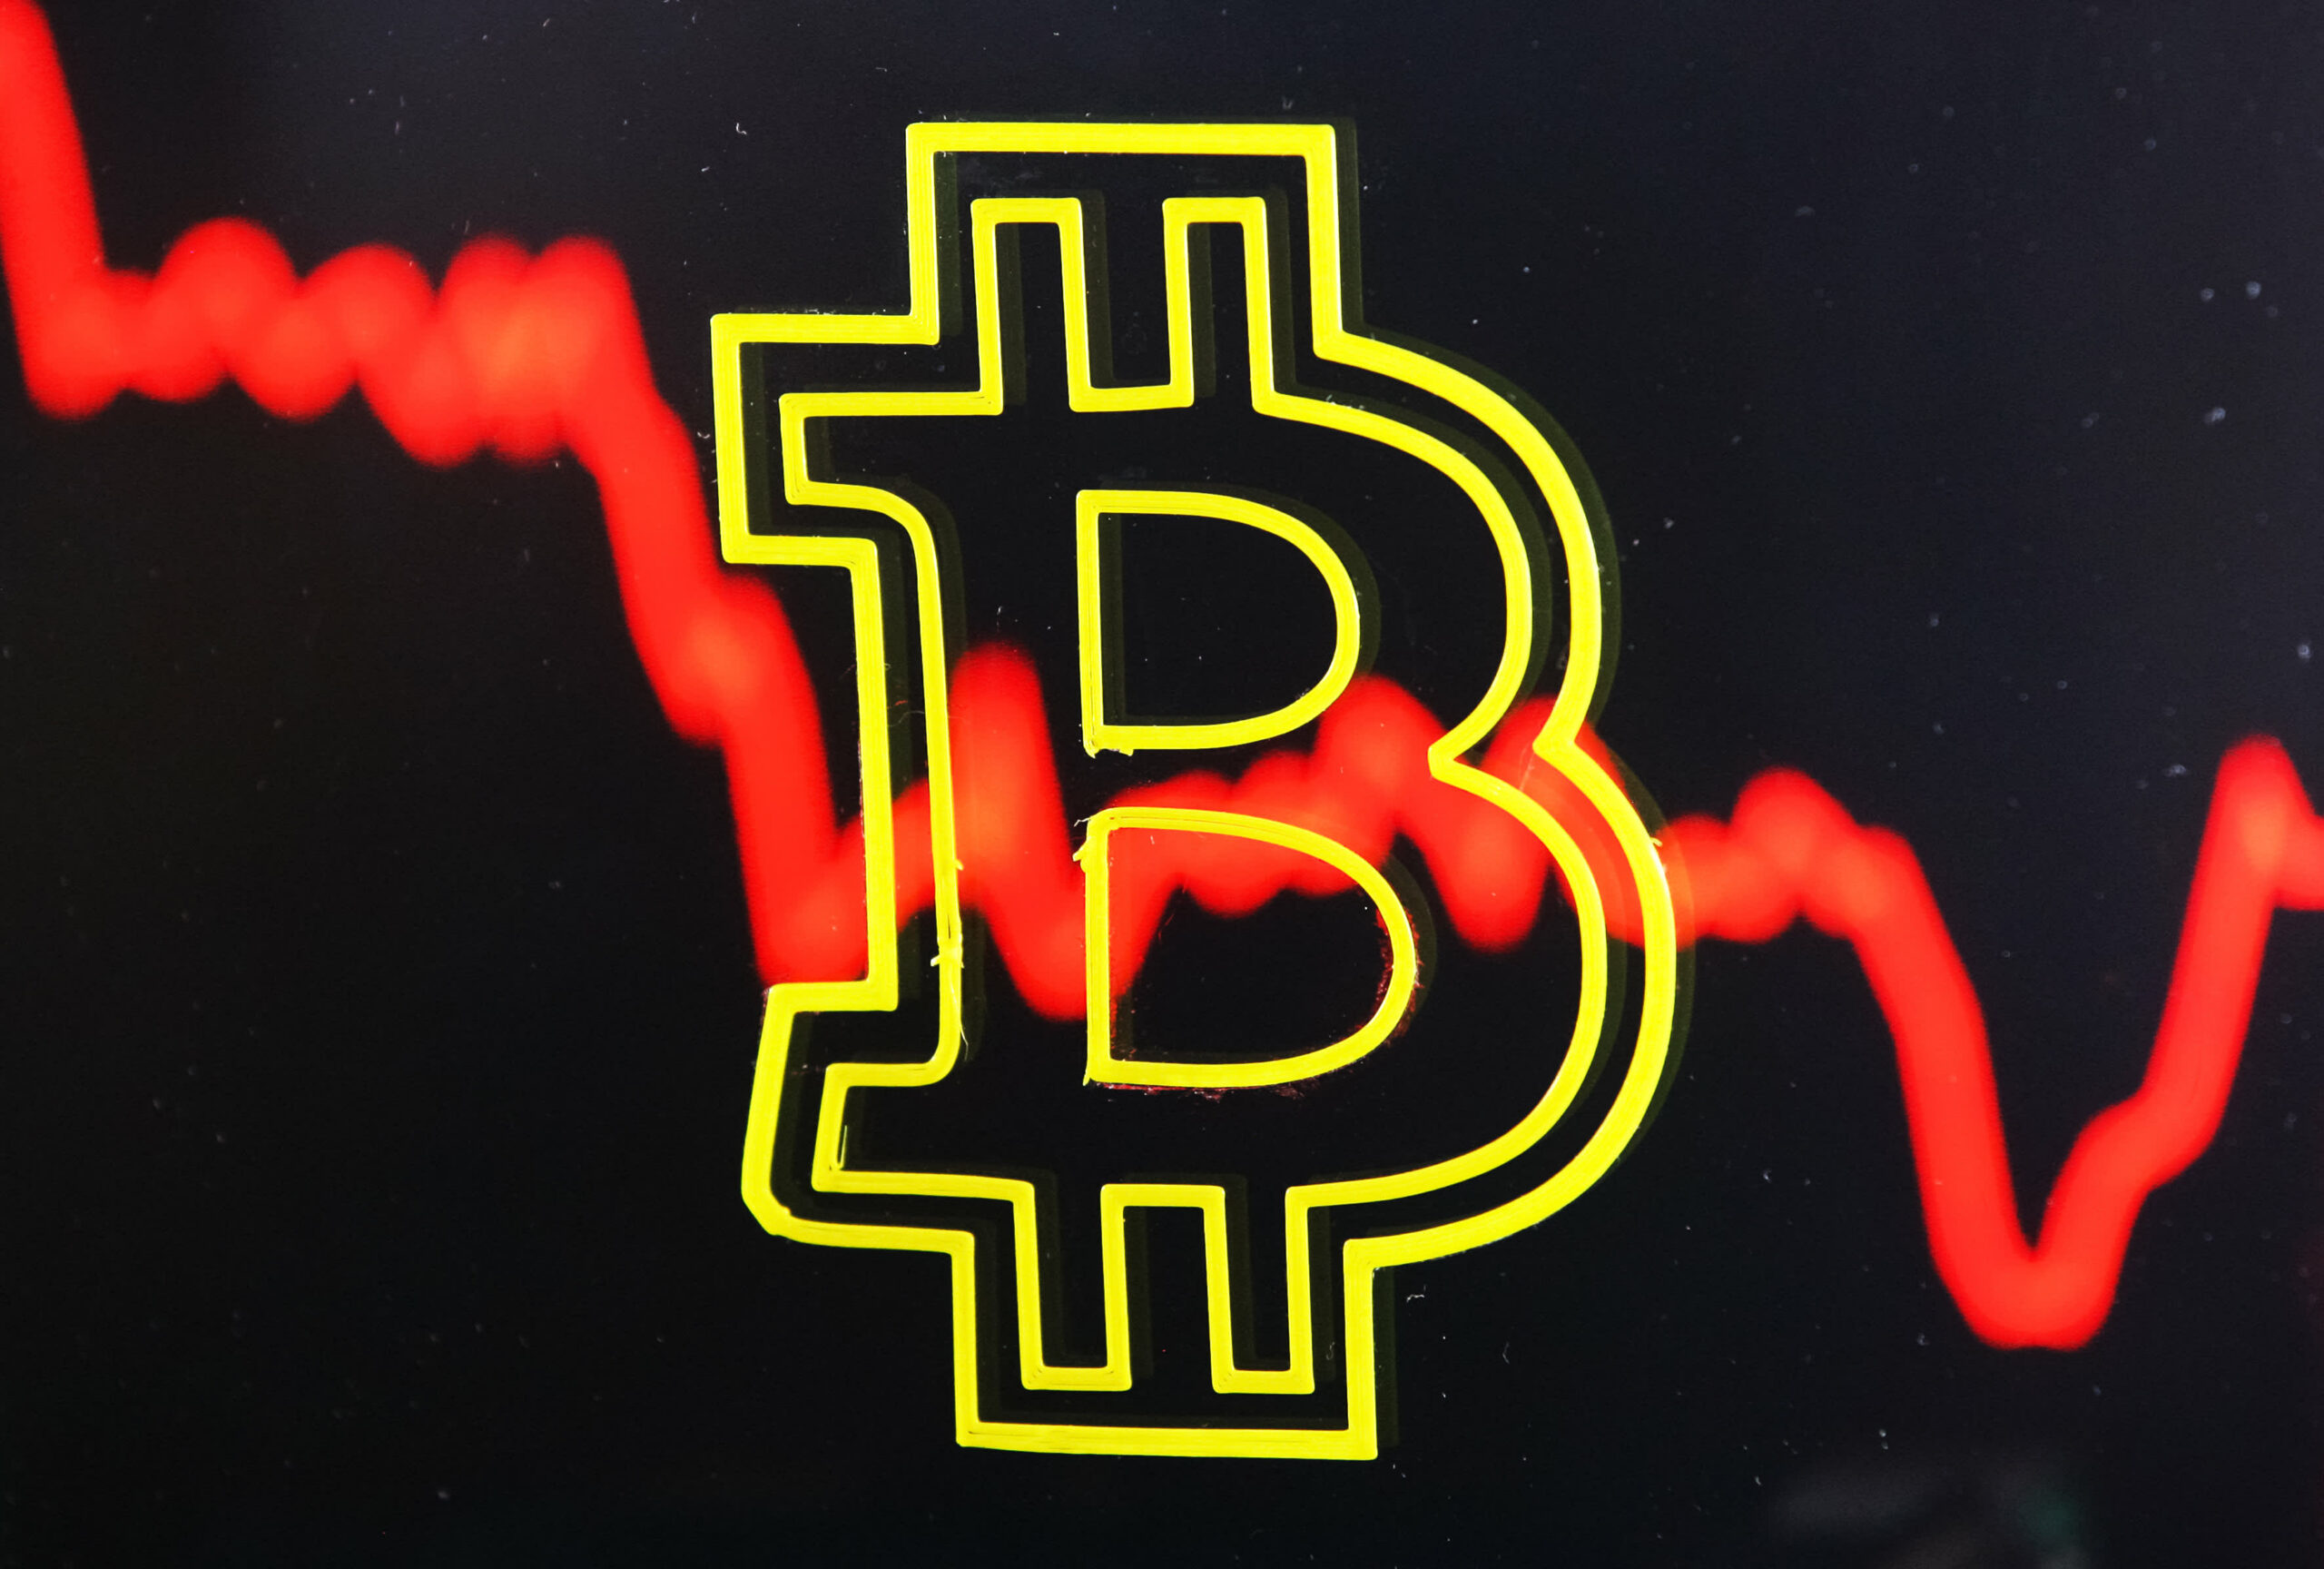 China may be first to ban bitcoin, but they won't be the last